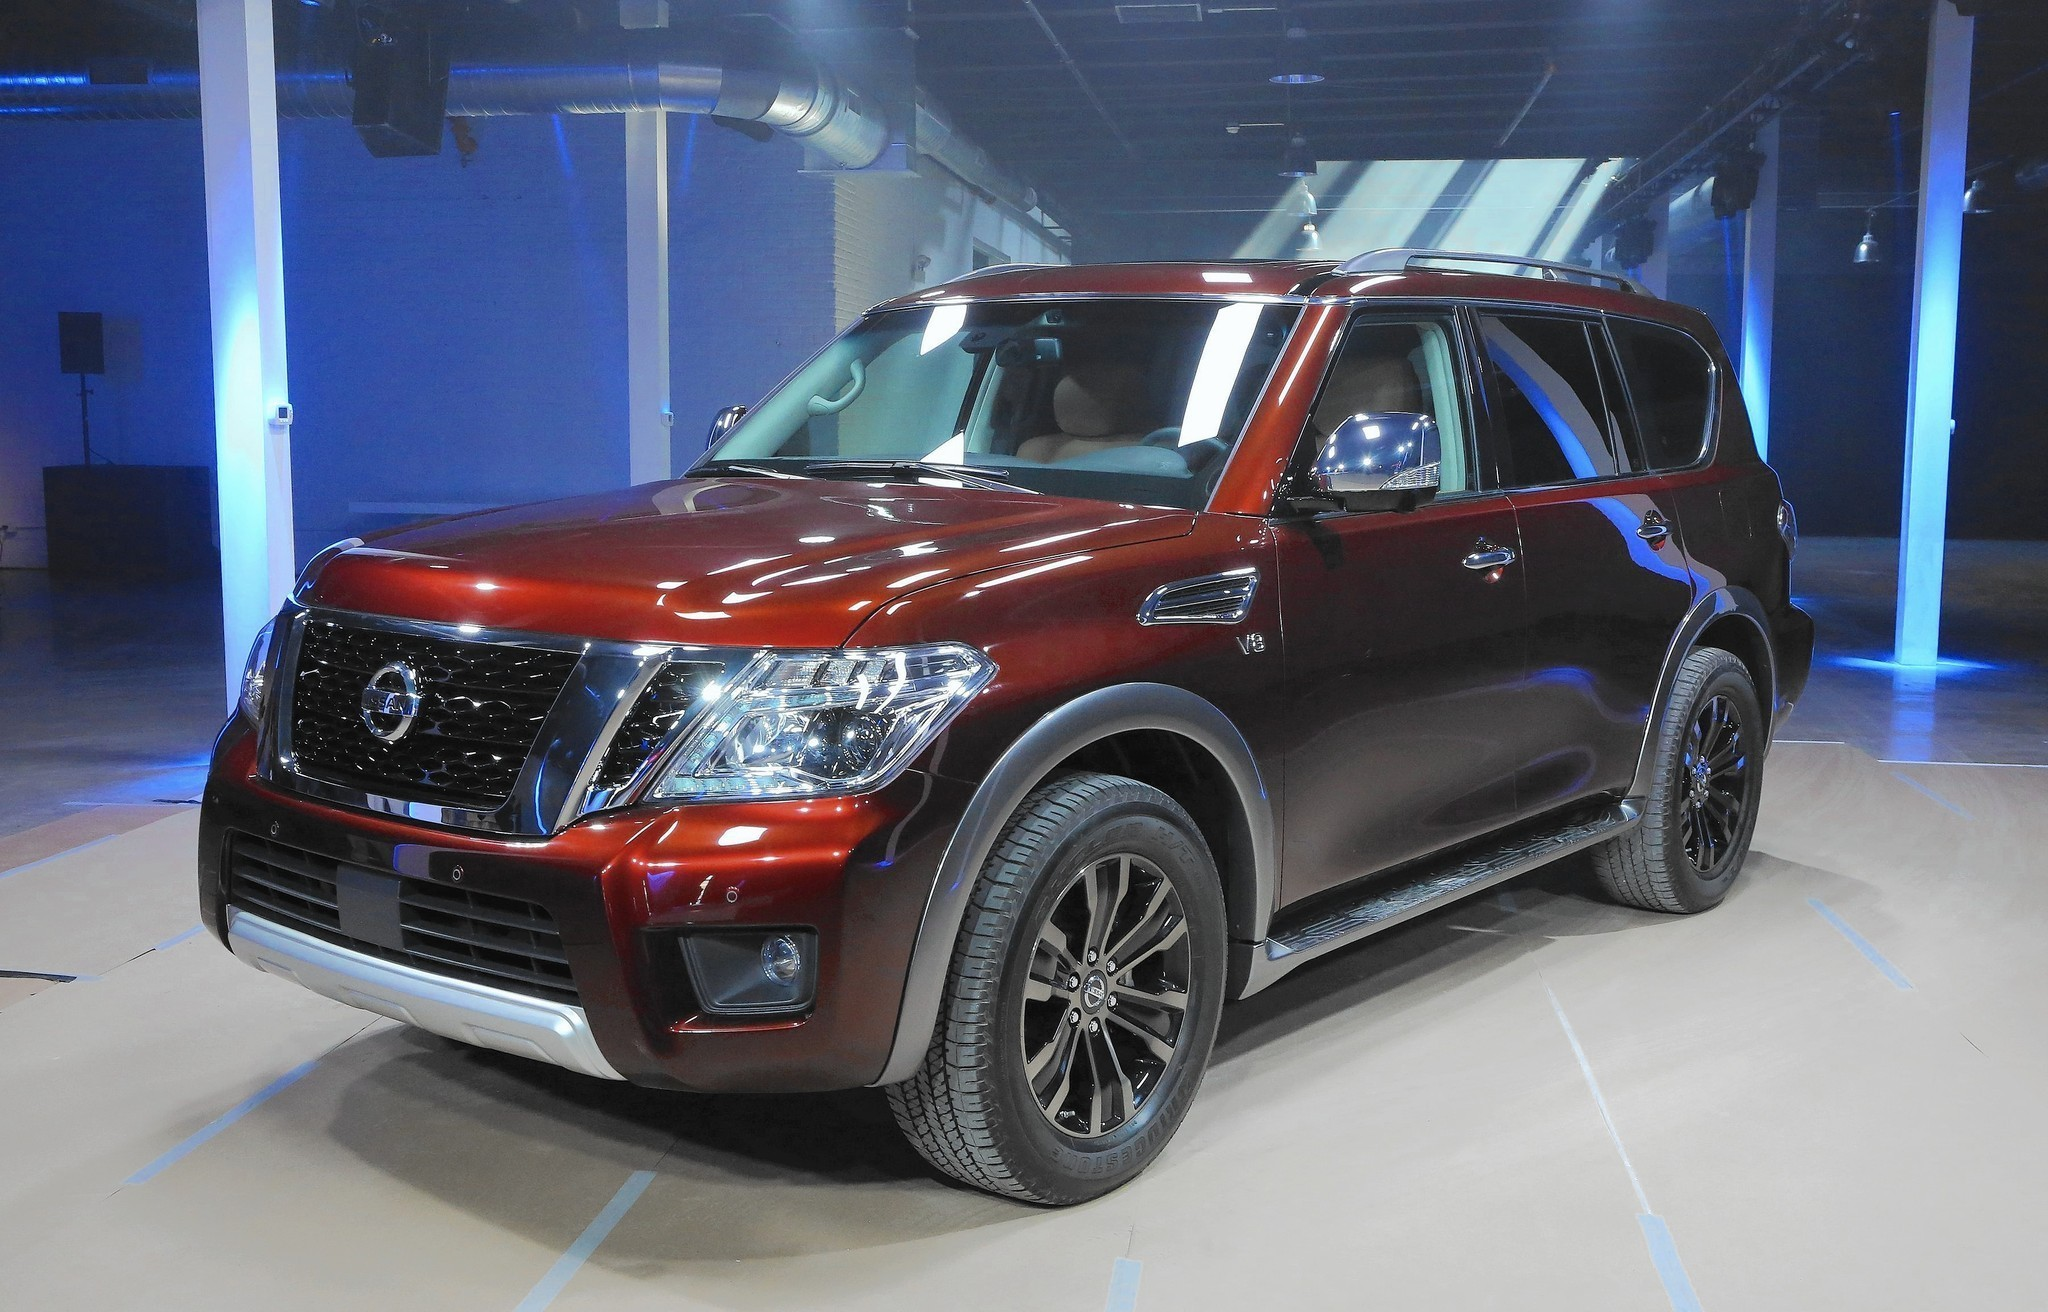 2017 Nissan Armada Full Size Suv Debuts On Eve Of Chicago Auto Show